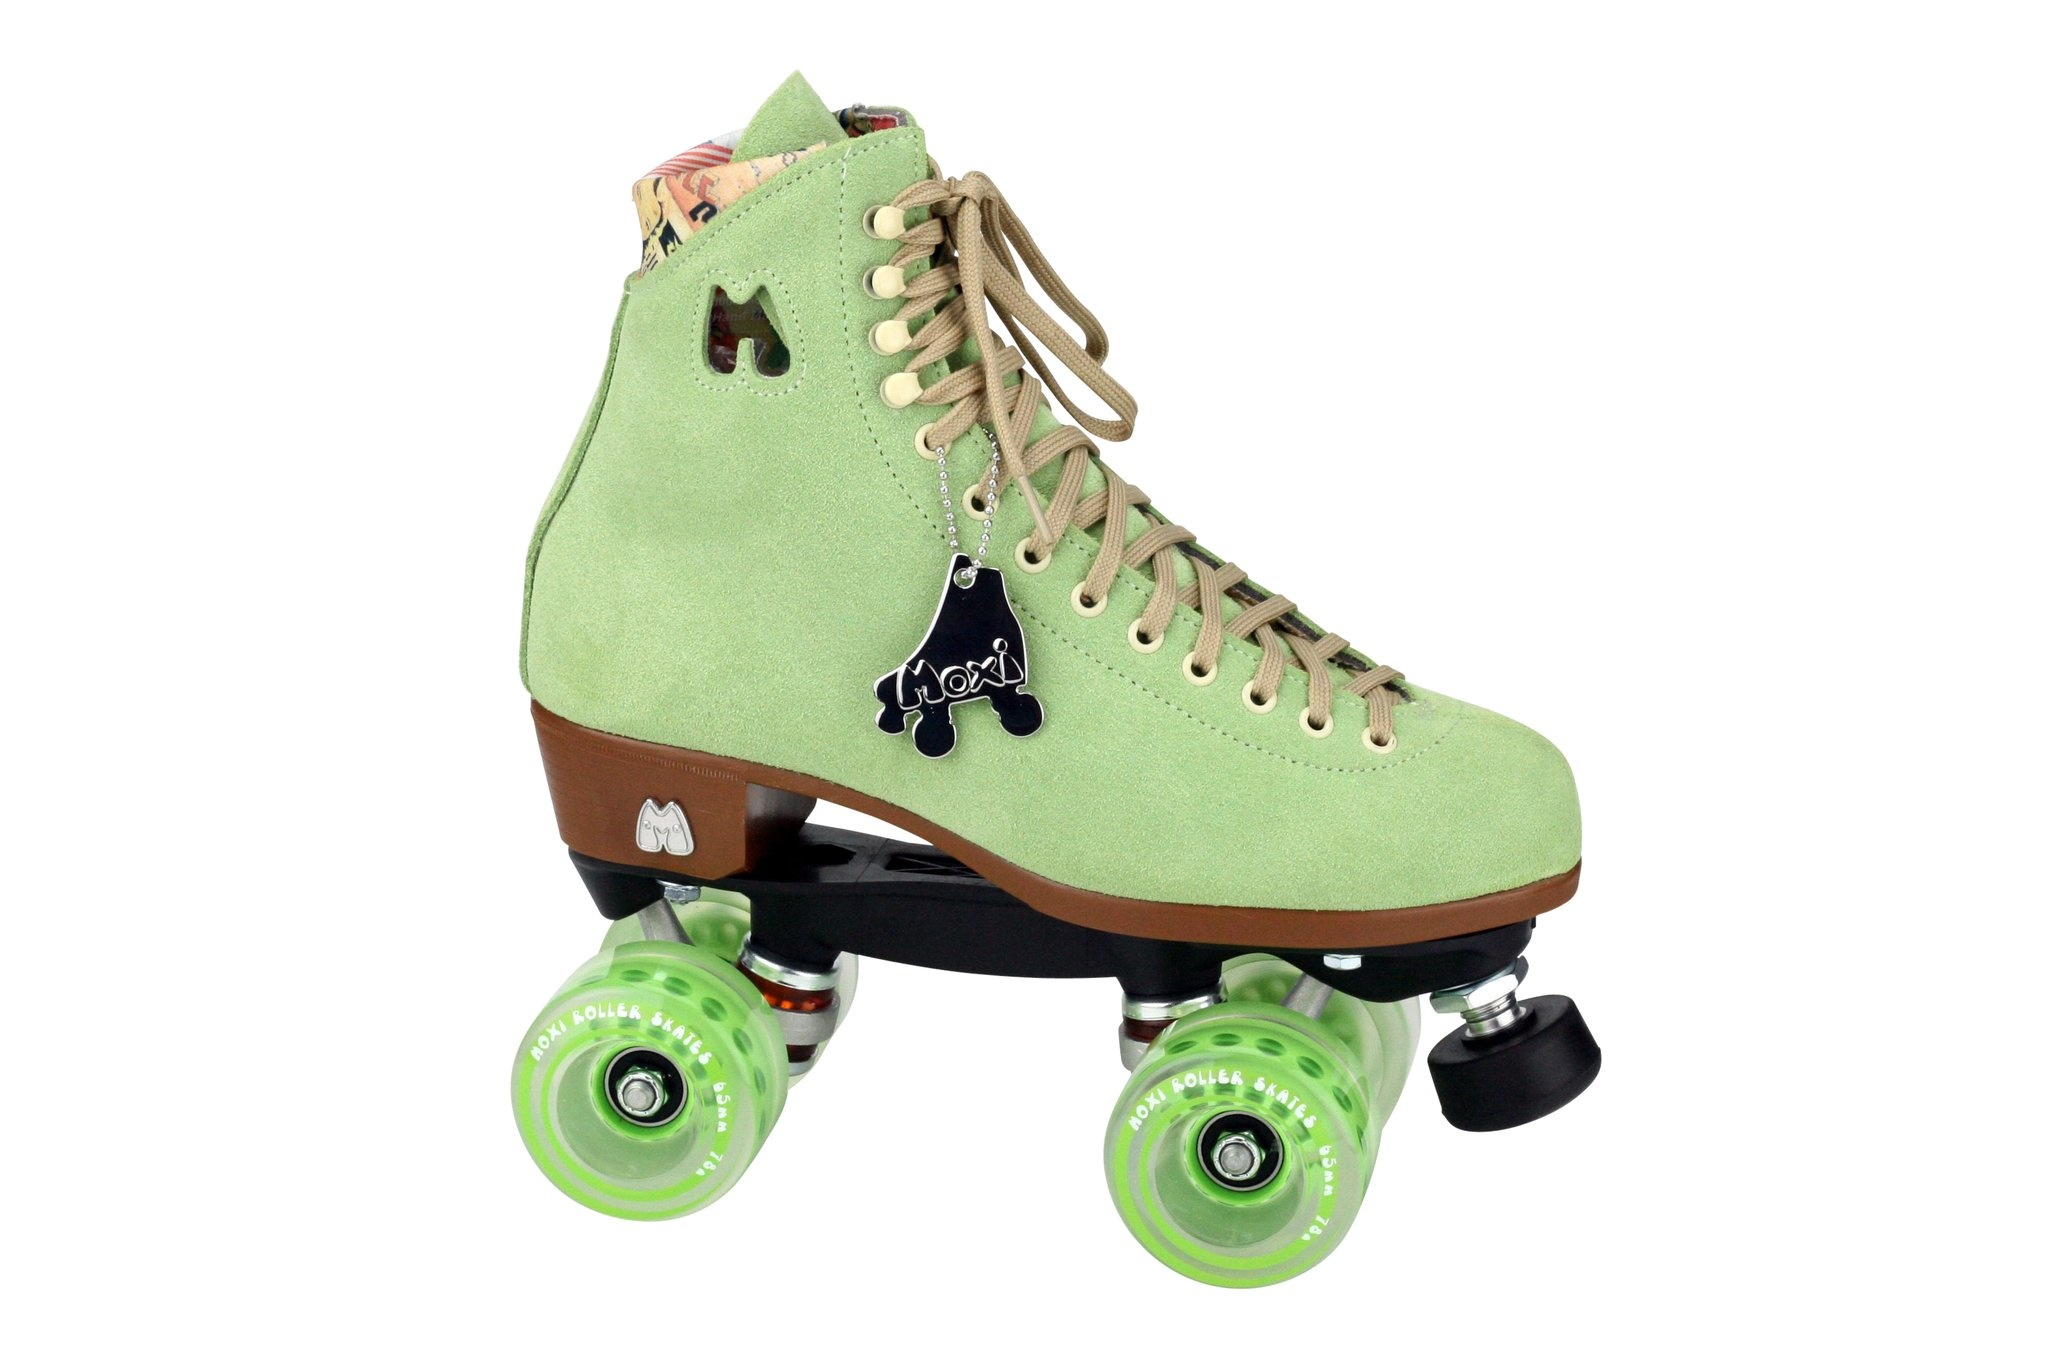 Moxi Lolly Skates Honeydew Green